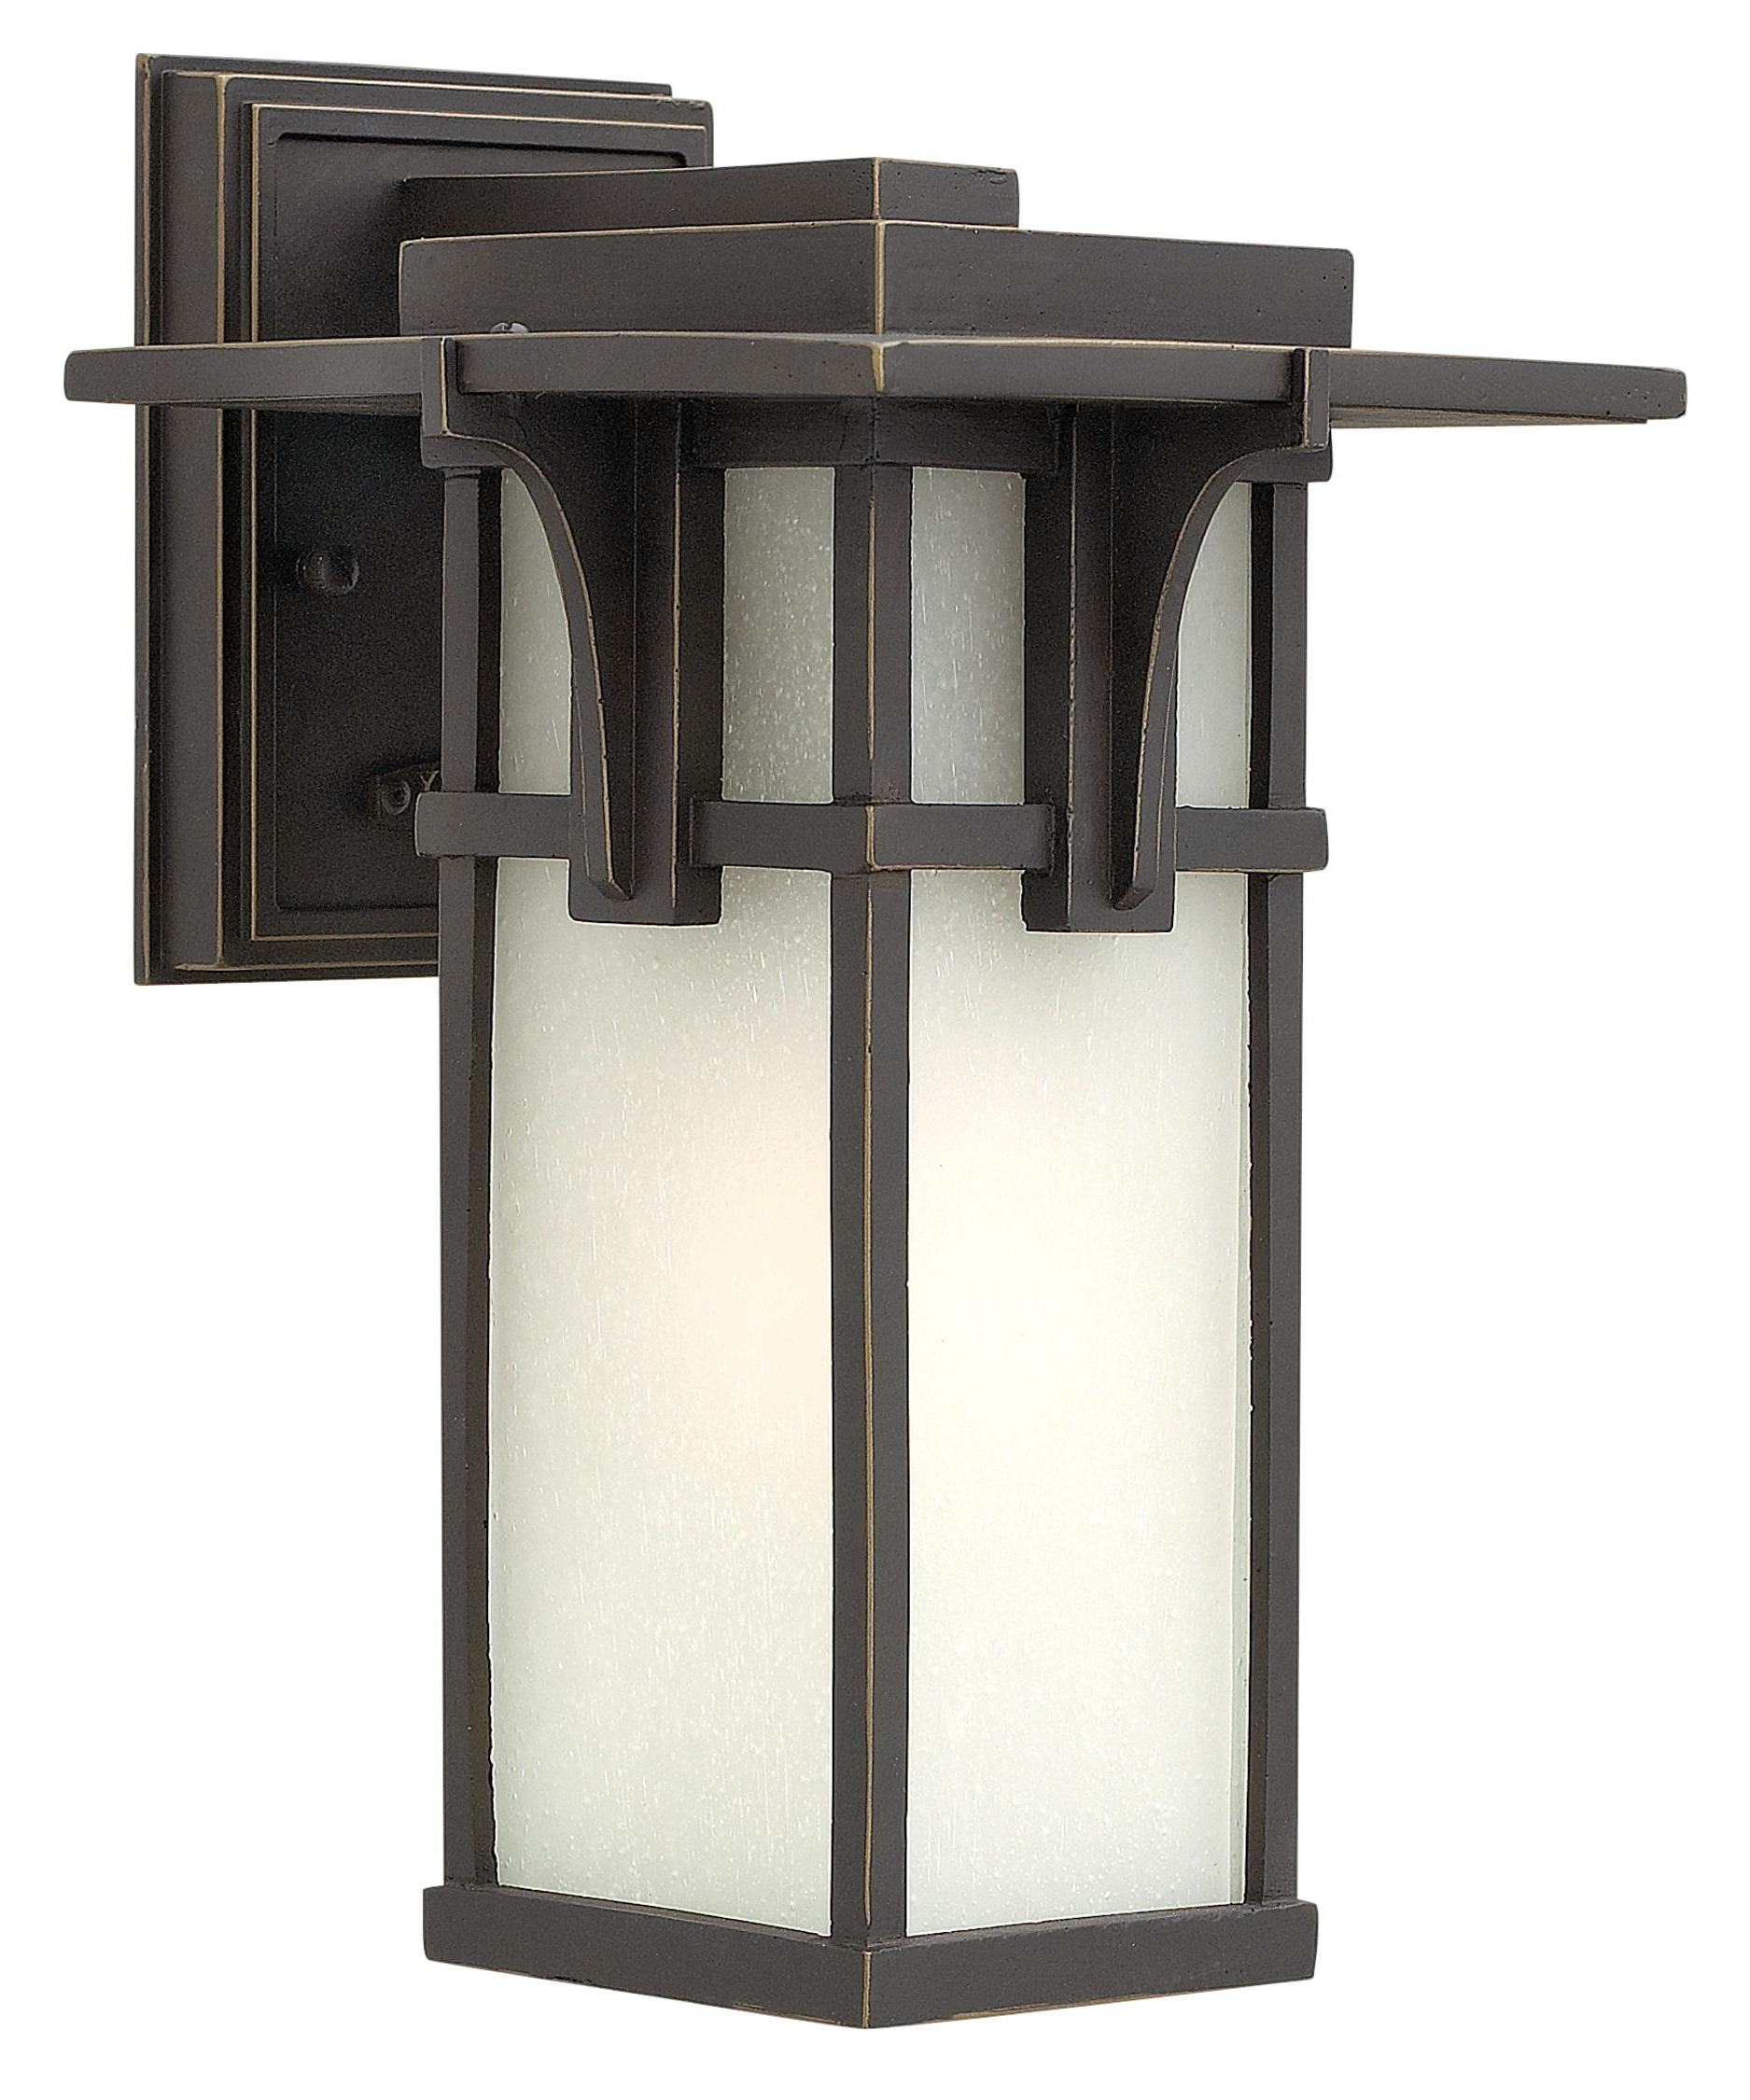 Popular Extra Large Wall Mount Porch Hinkley Lighting With Hinkley Lighting 2230 Manhattan 7 Inch Wide 1 Light Outdoor Wall (View 16 of 20)